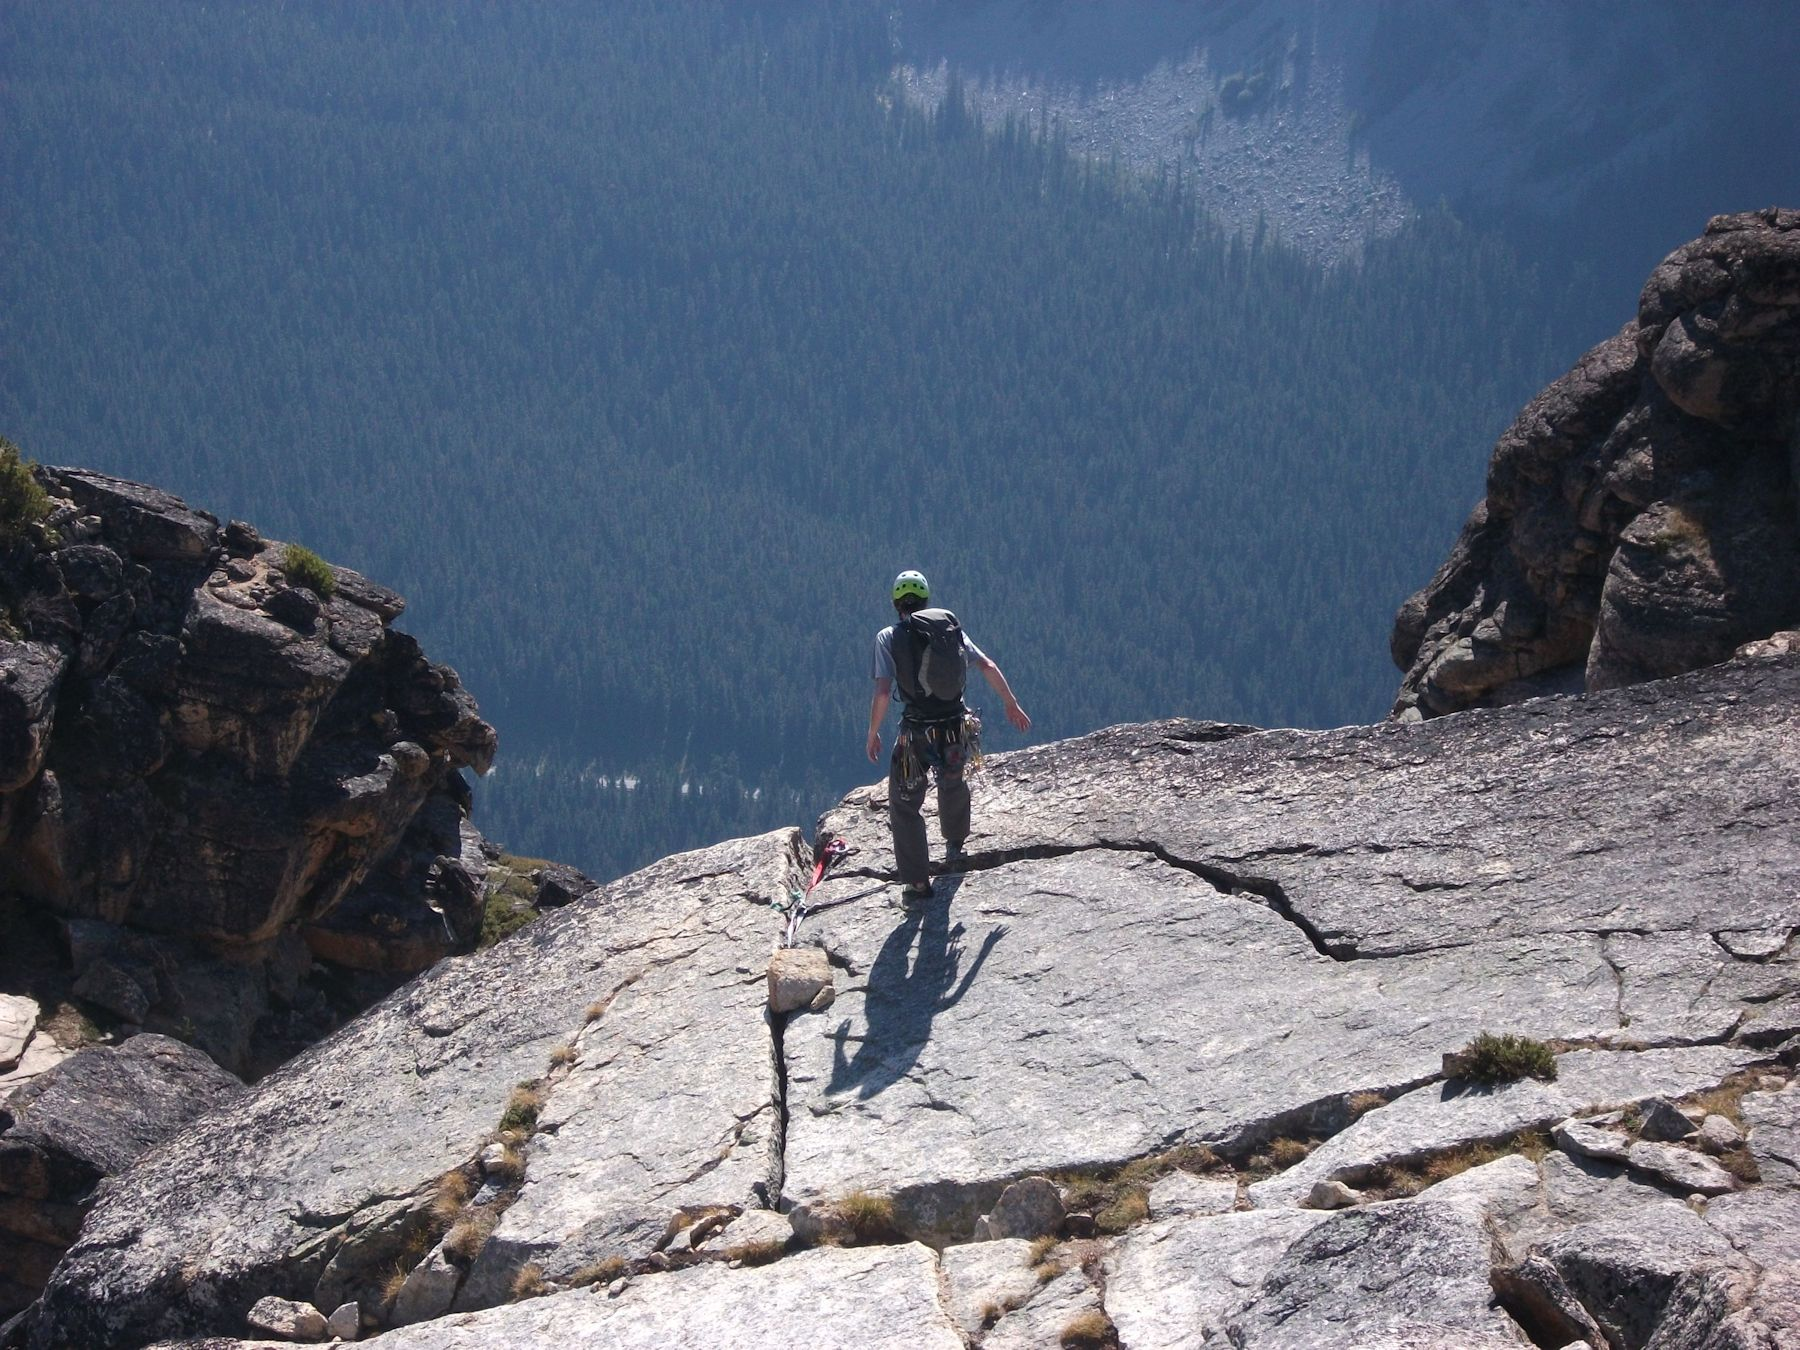 Rap anchor at top of Pitch 15